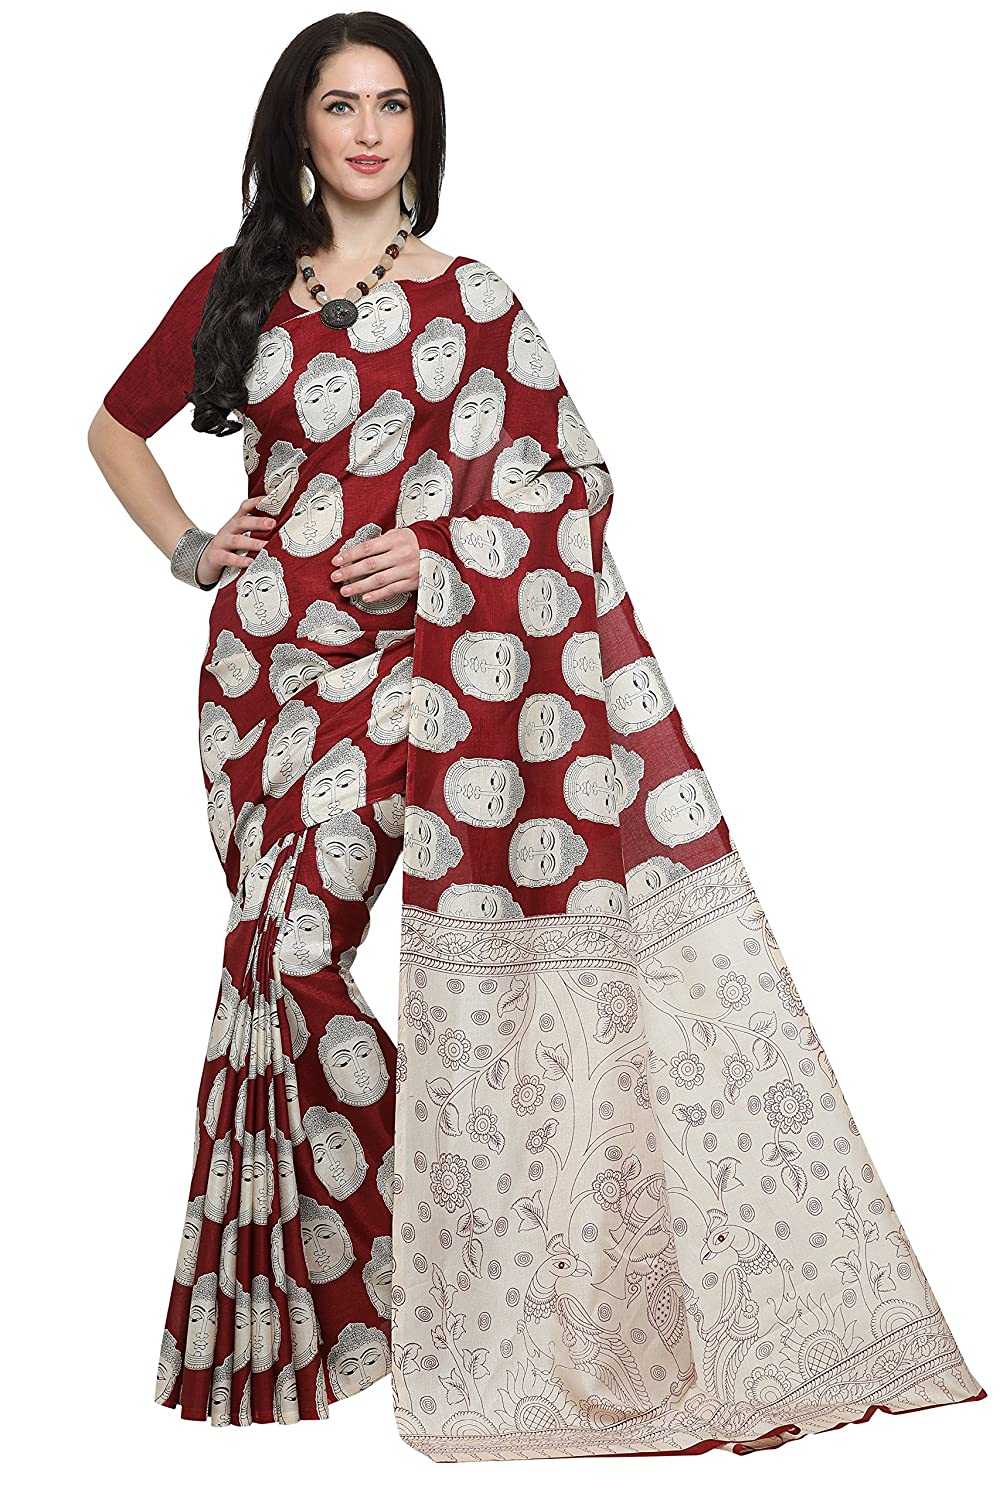 5c98ba646e004 EthnicJunction Art Silk Saree with Blouse Piece (EJ1168-7010 Maroon  Buddha Free Size)  Amazon.in  Clothing   Accessories